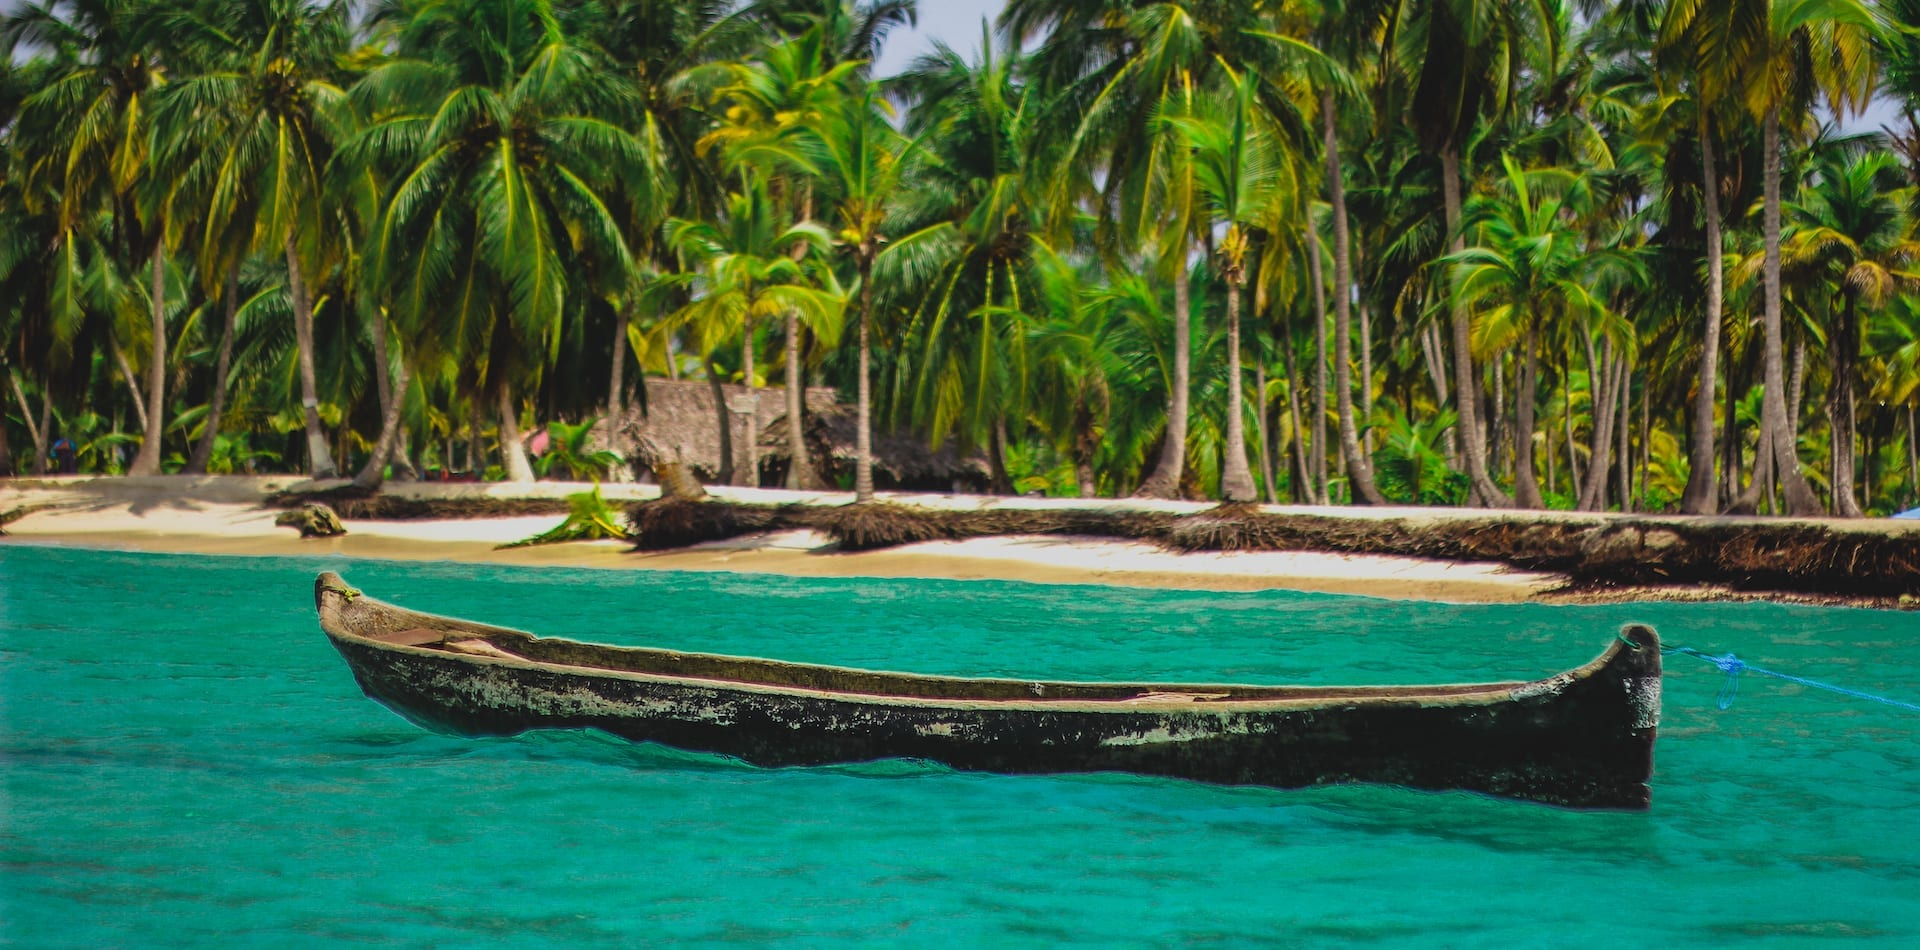 Authentic longboat floating in Panama's pristine warm waters